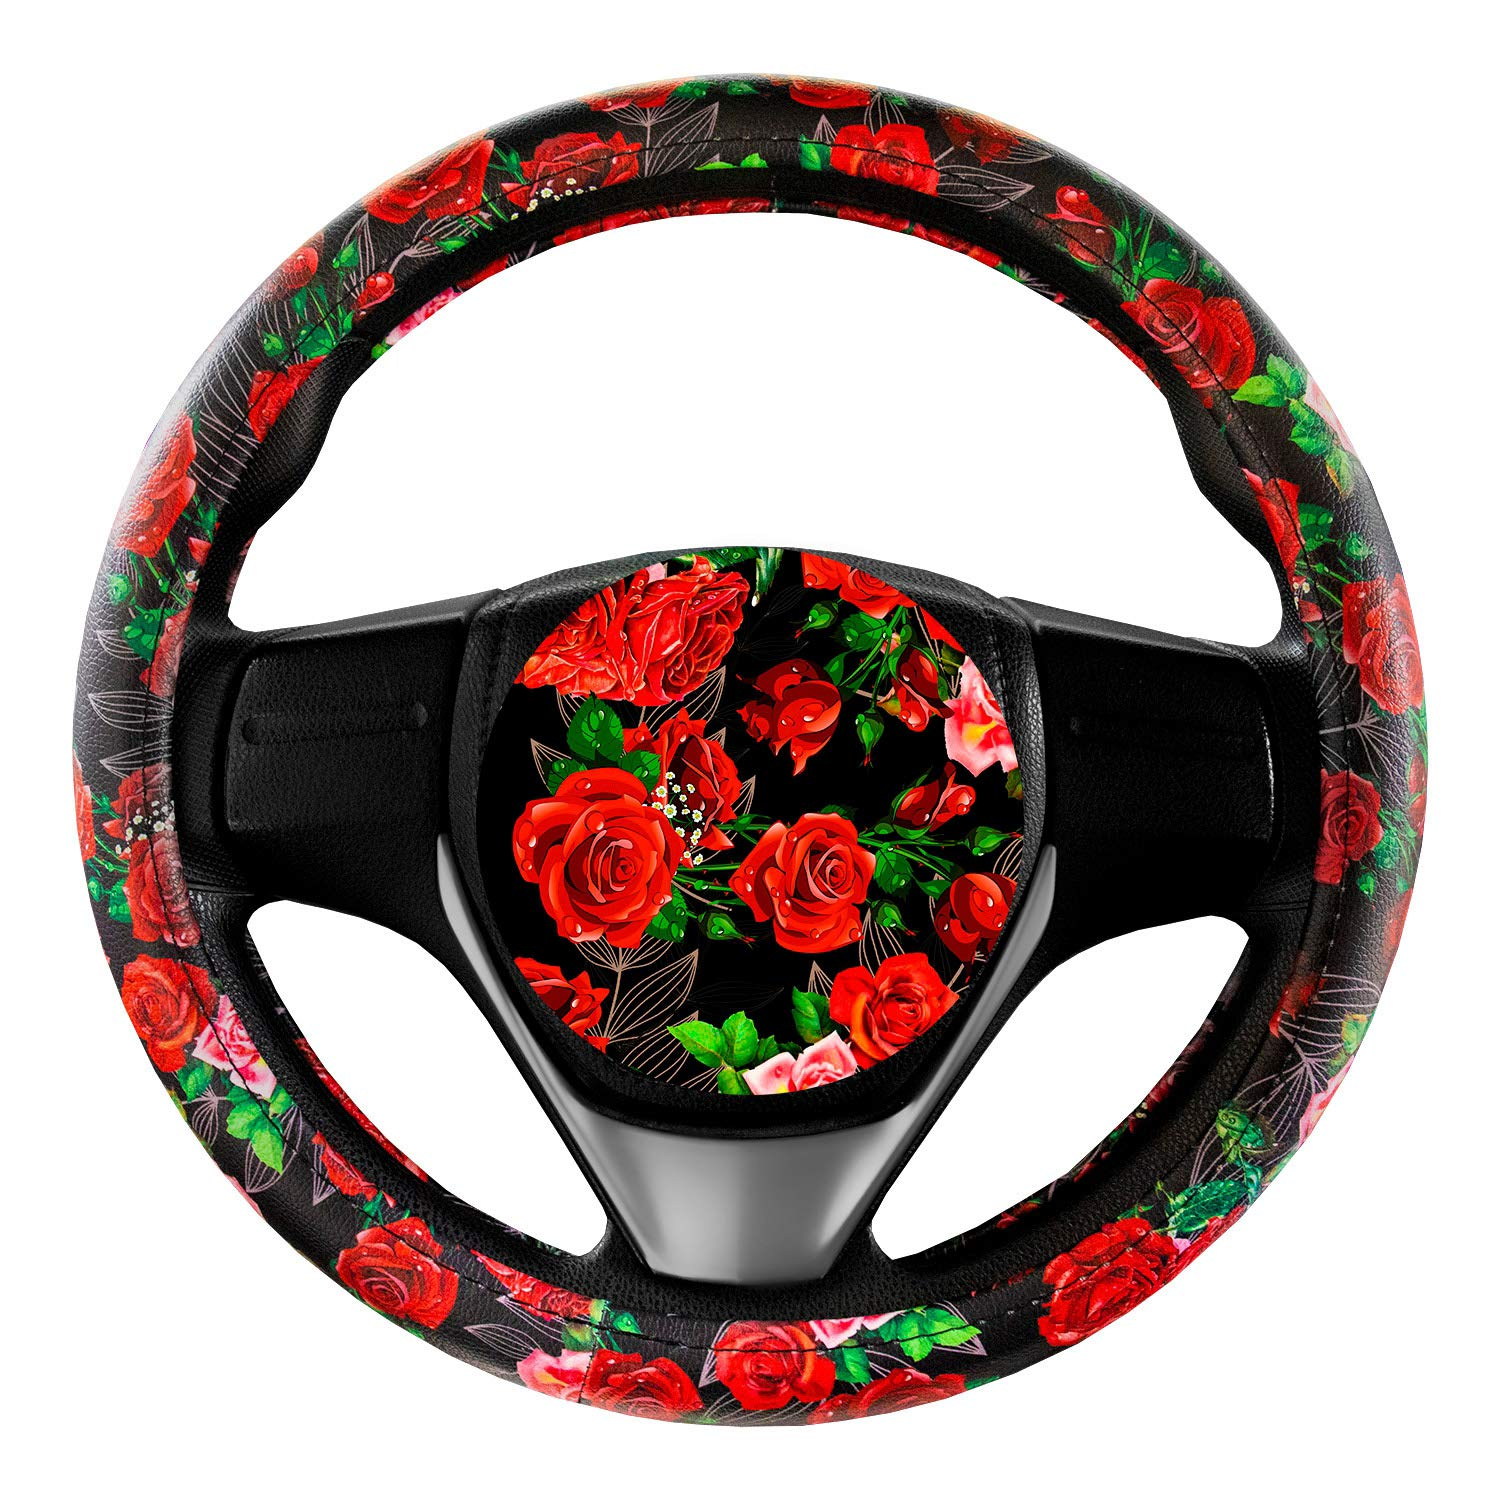 Steering Wheel Cover Cute and Handmade,PU Universal Steering Wheel Cover 15 inch, Fashionable Rose Flower Car Accessories for Women,Top Girl Car Accessories(Rose Garden)